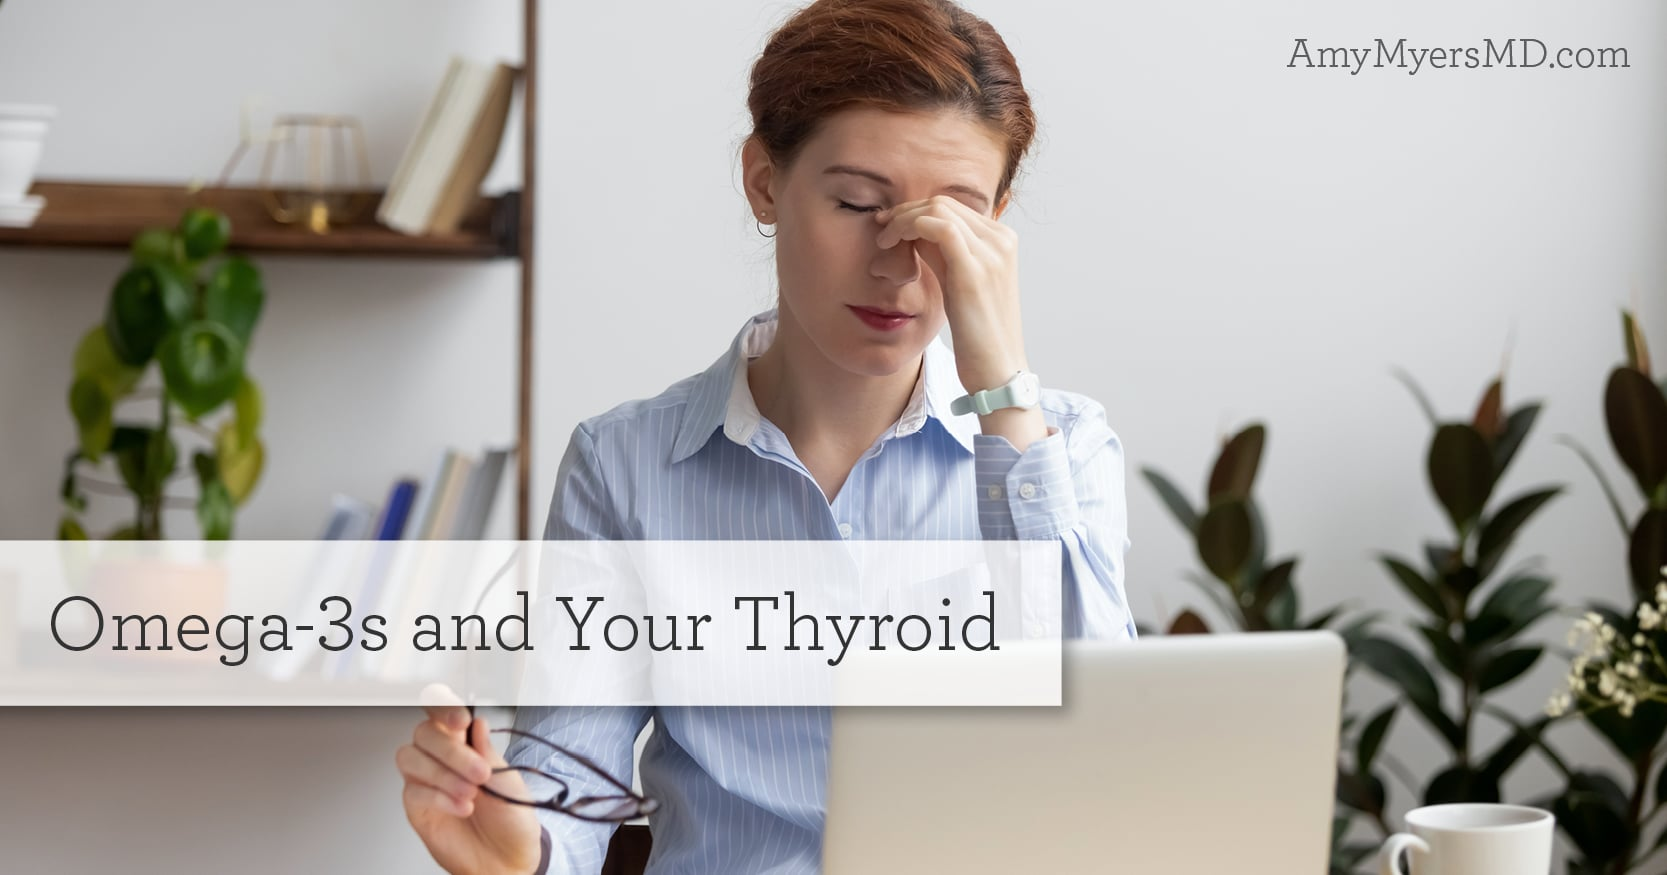 omega-3s and your thyroid